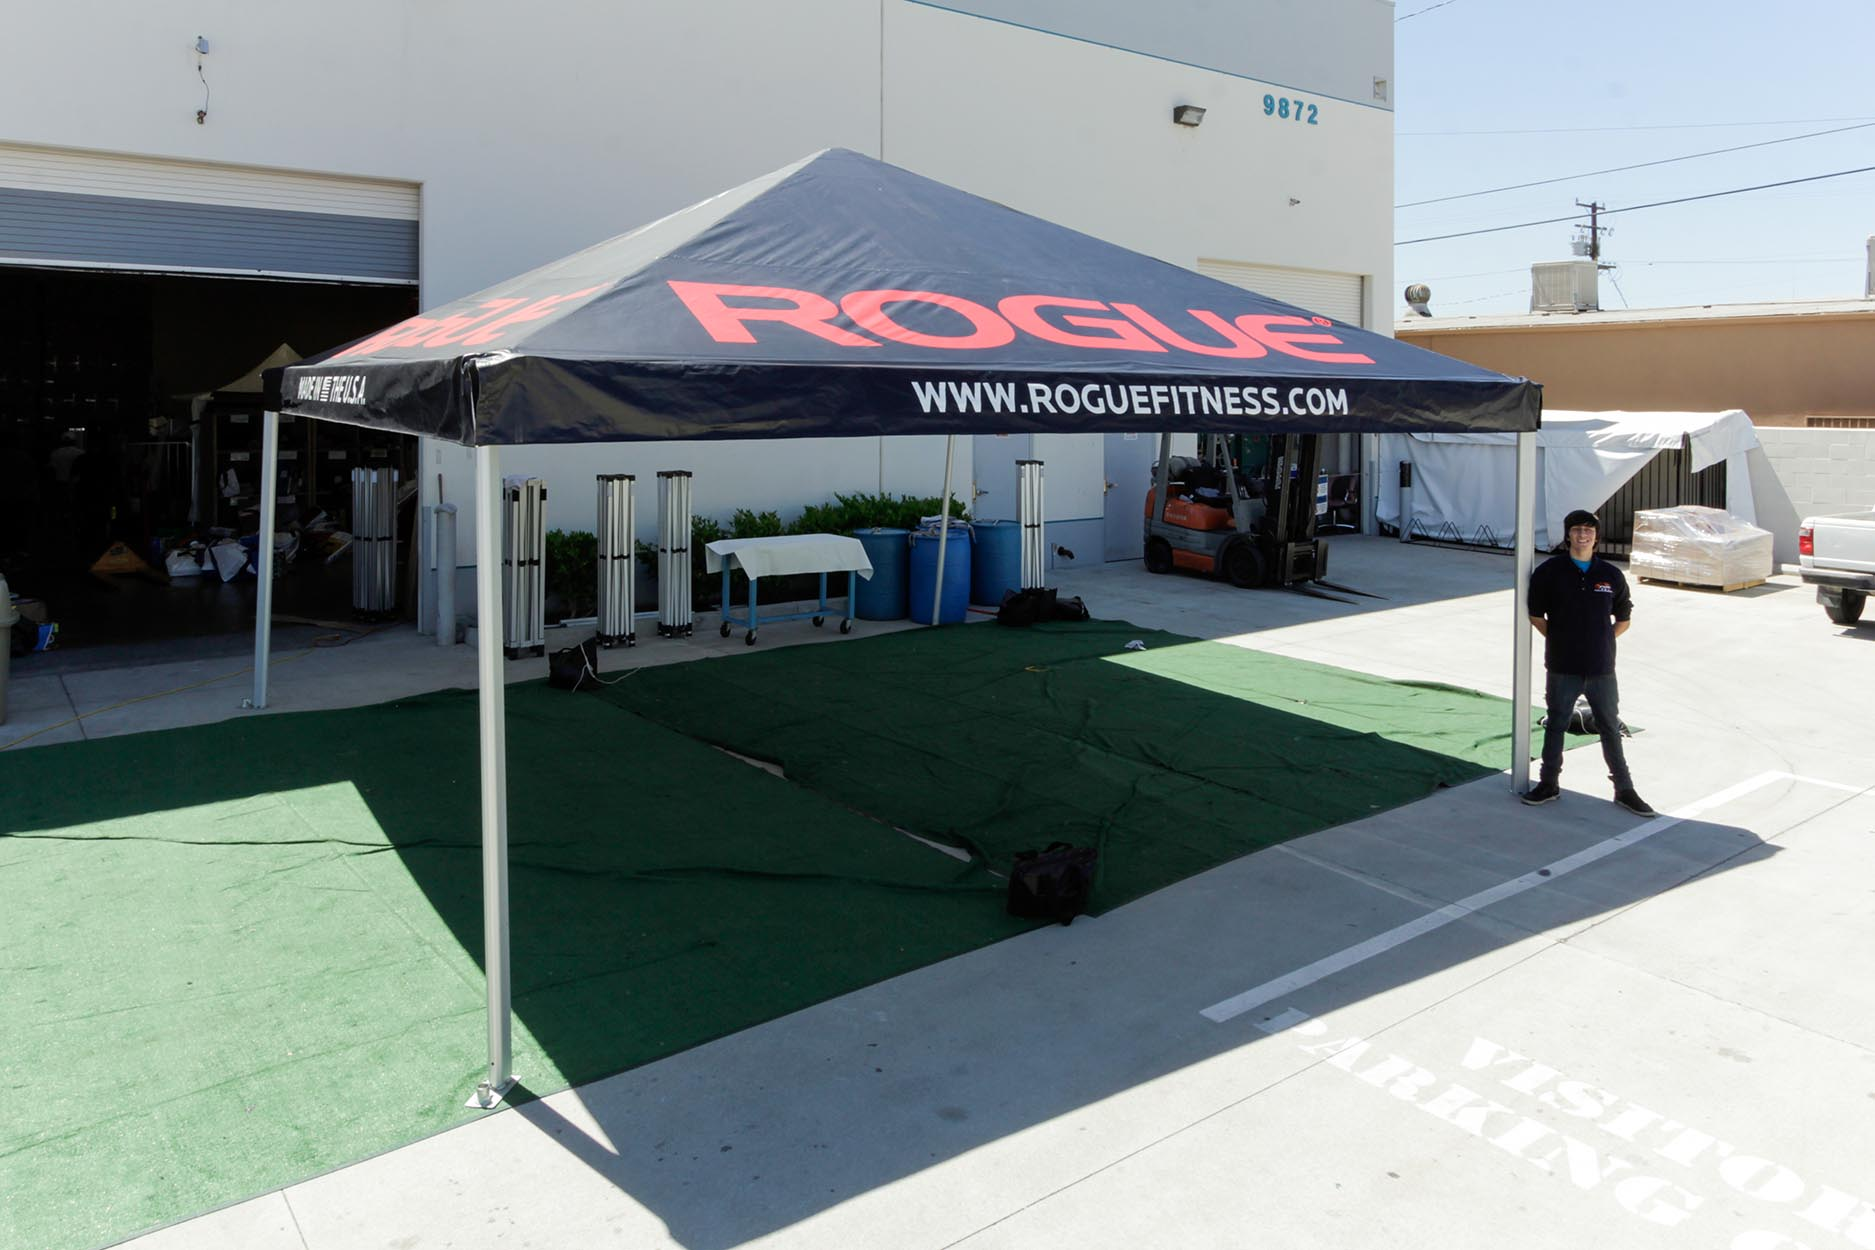 Rogue Fitness 20x20 Standard Frame Tent with a printed tent top and a person standing next to it for size comparison